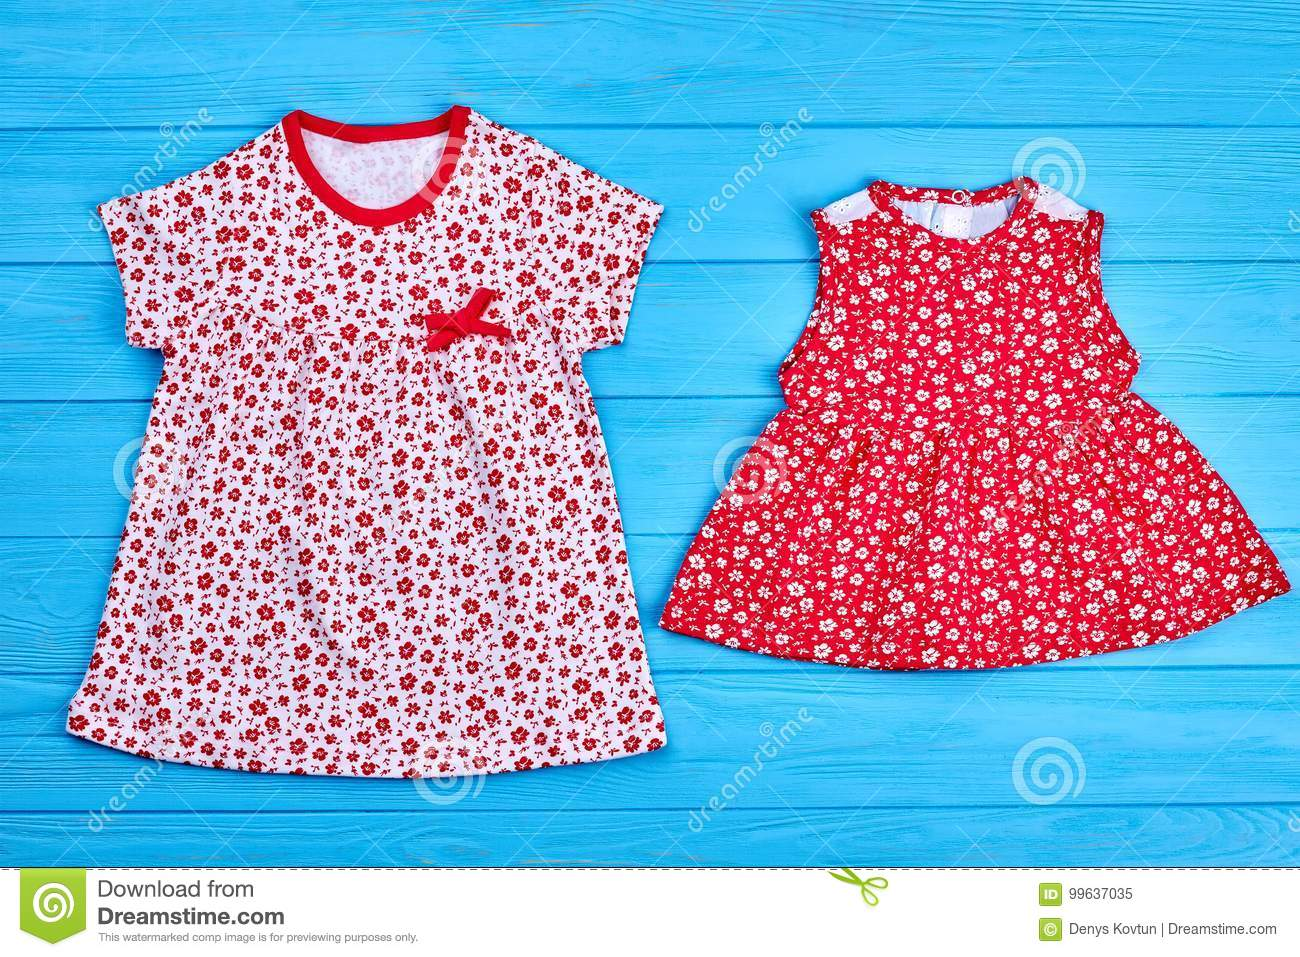 d34b131172a4e Kids Summer Cotton Clothes. Stock Image - Image of brand, fashion ...